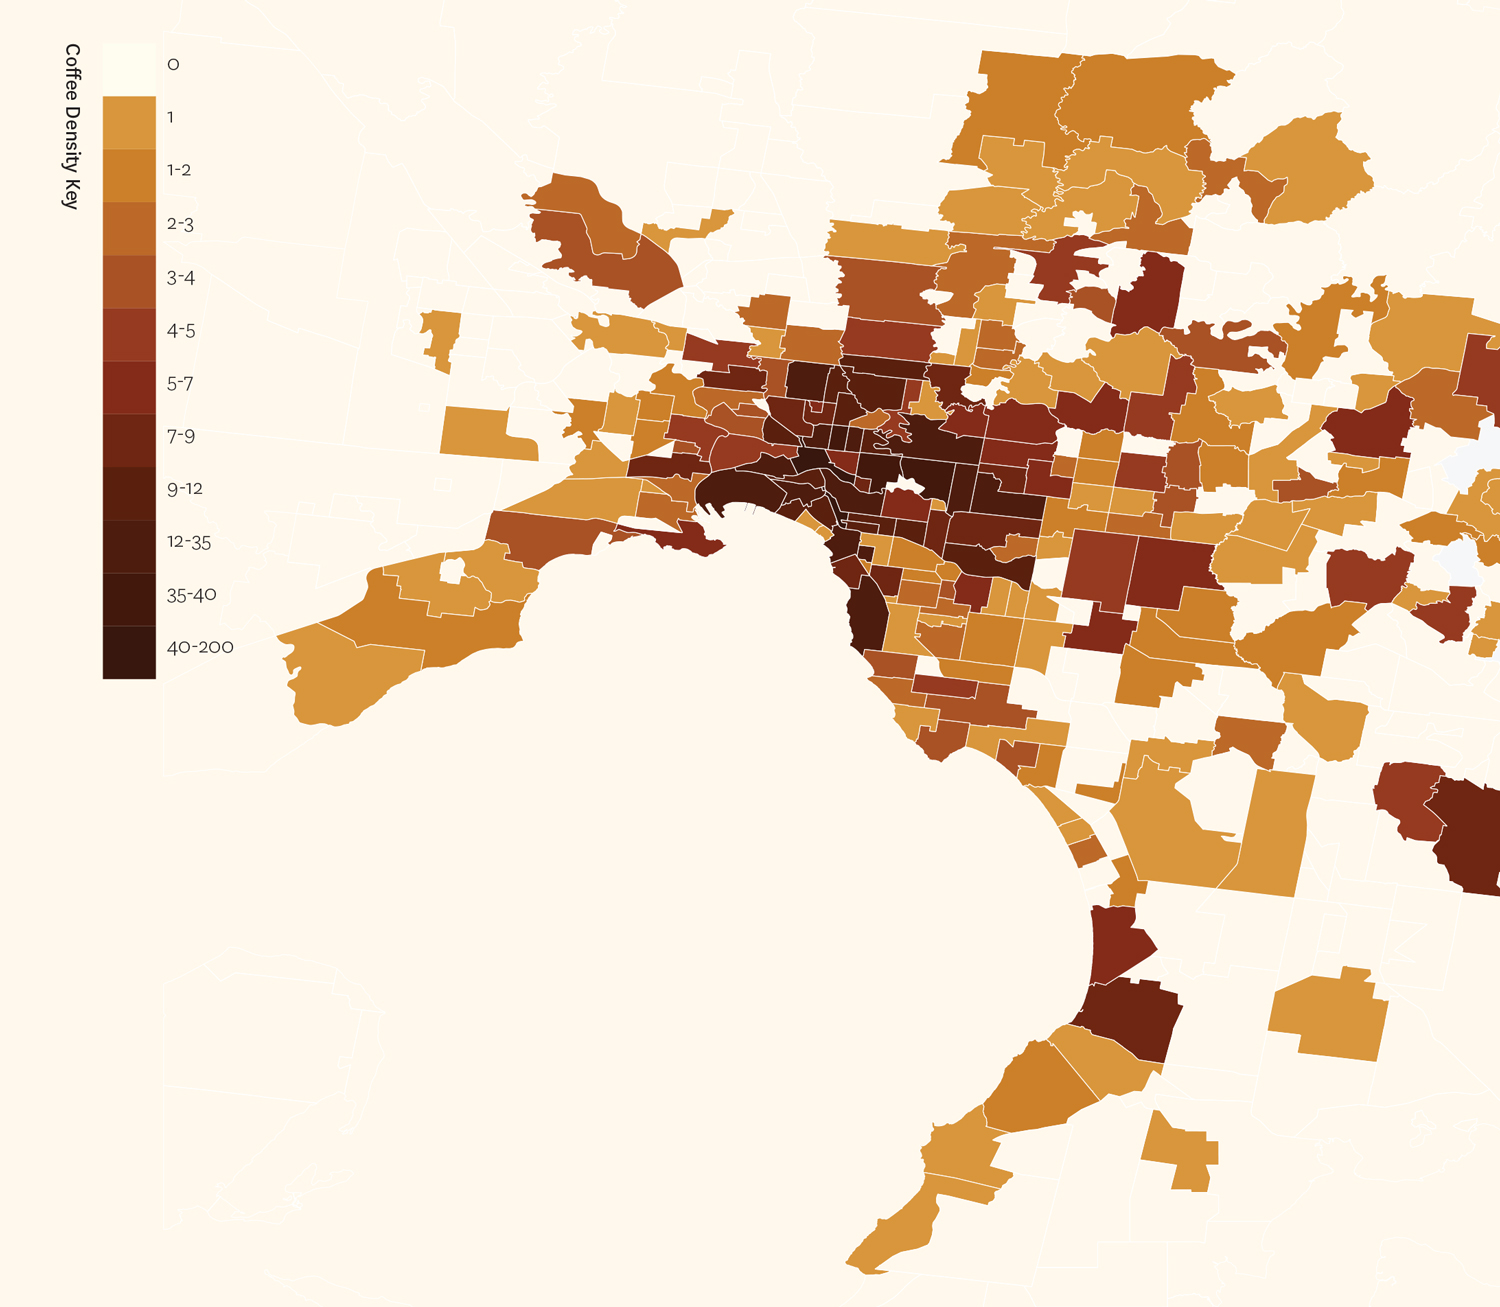 Coffee Shop Density Map